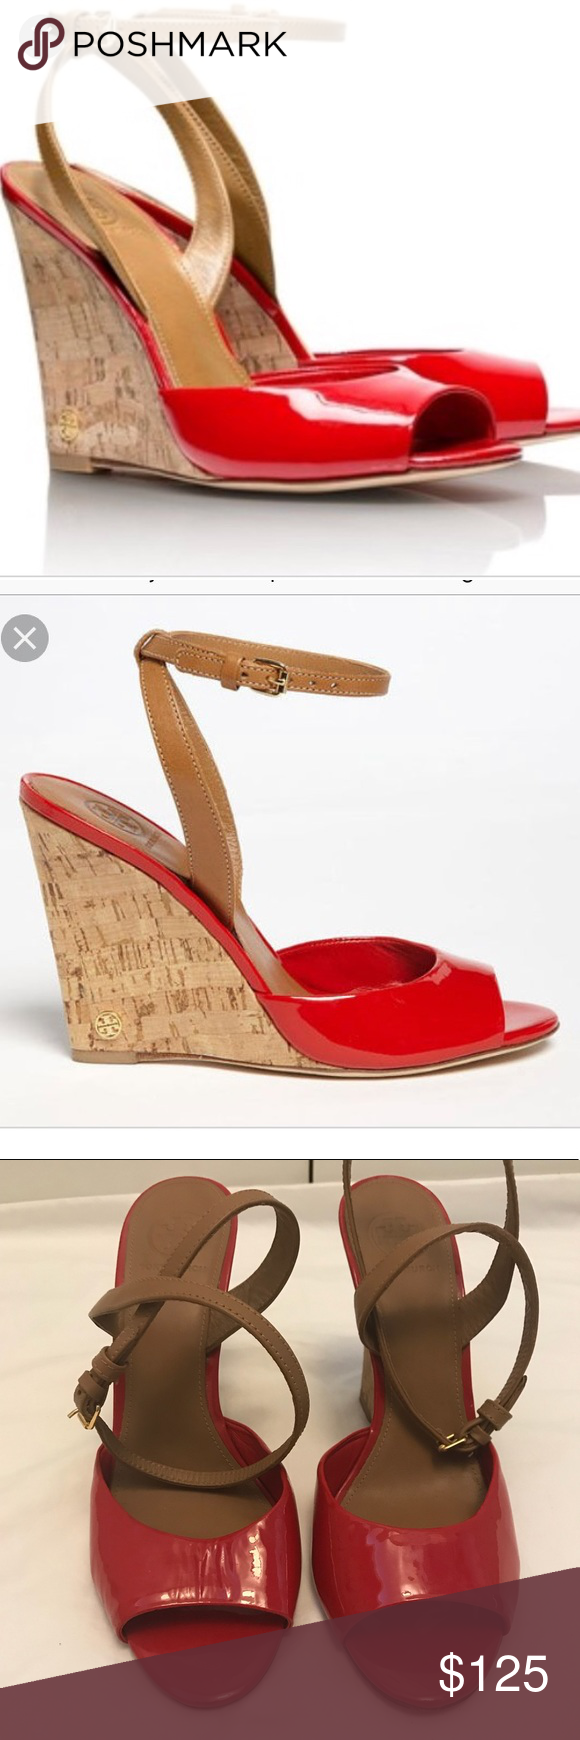 f2a4bee84b115f Tory Burch Ashton wedge Perfection! Tory Burch Ashton red patent leather  wedges! Worn a few times. No significant flaws